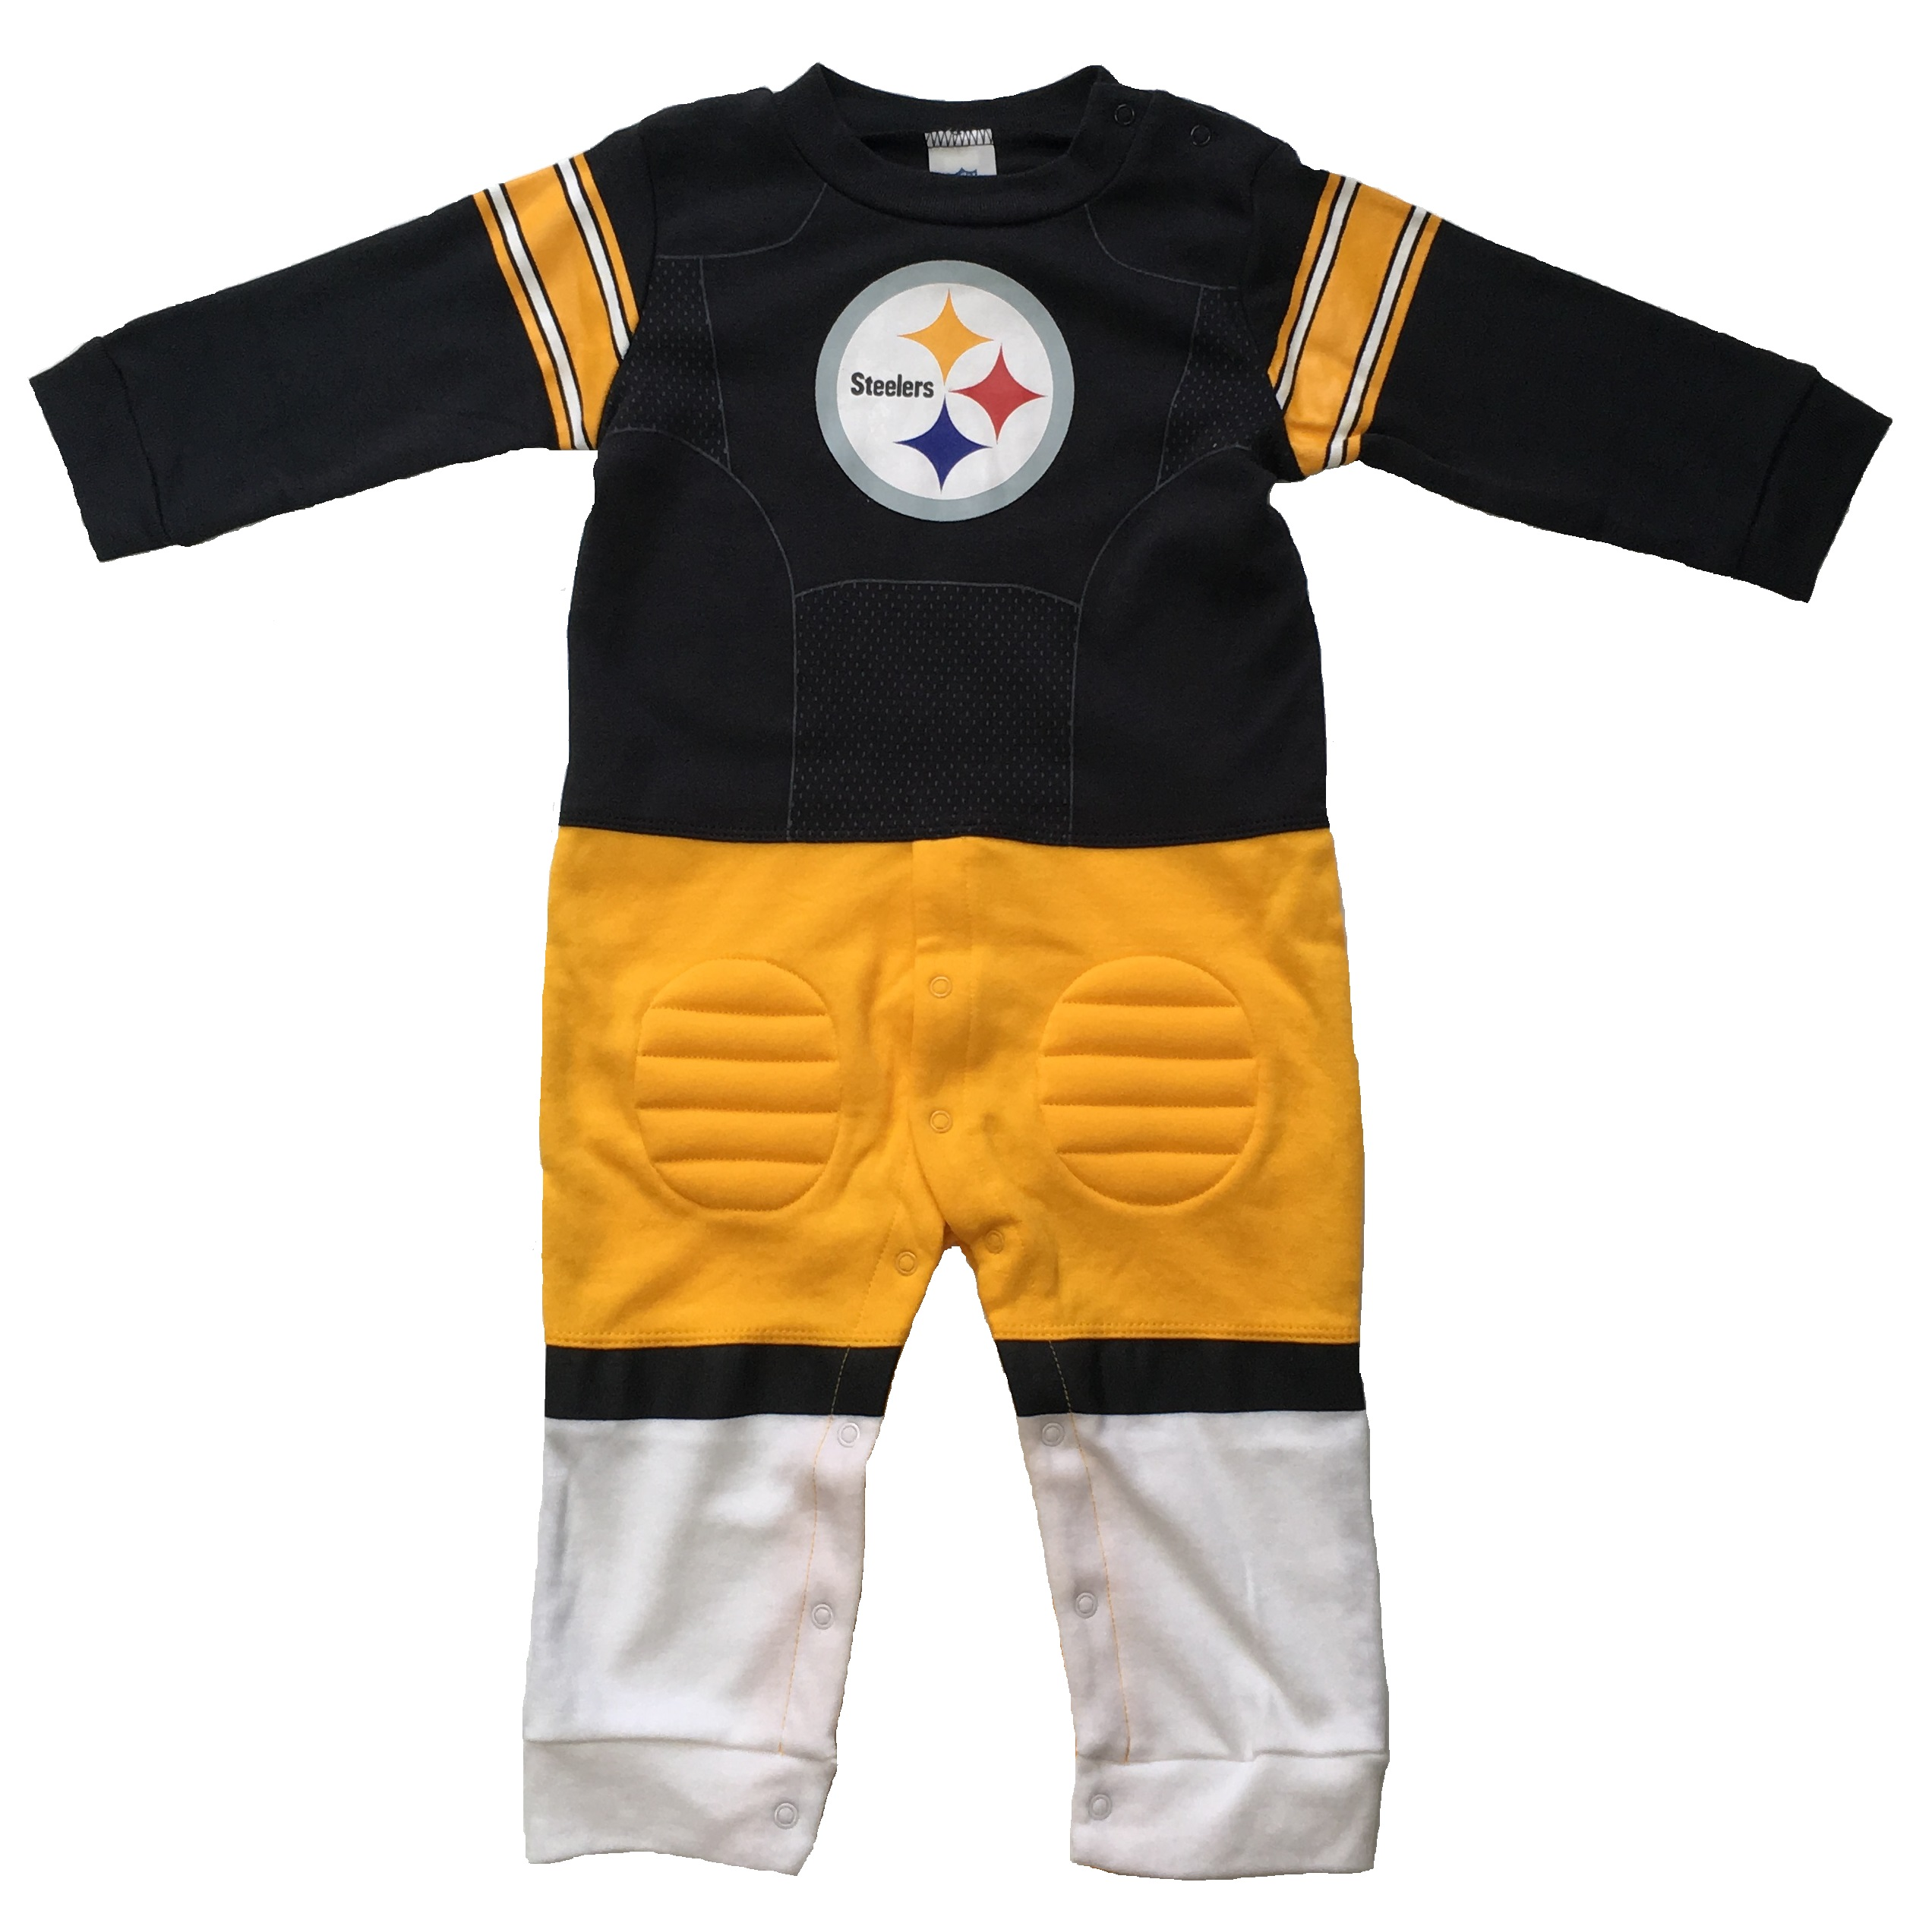 nfl-steelers-player-playersuit-12